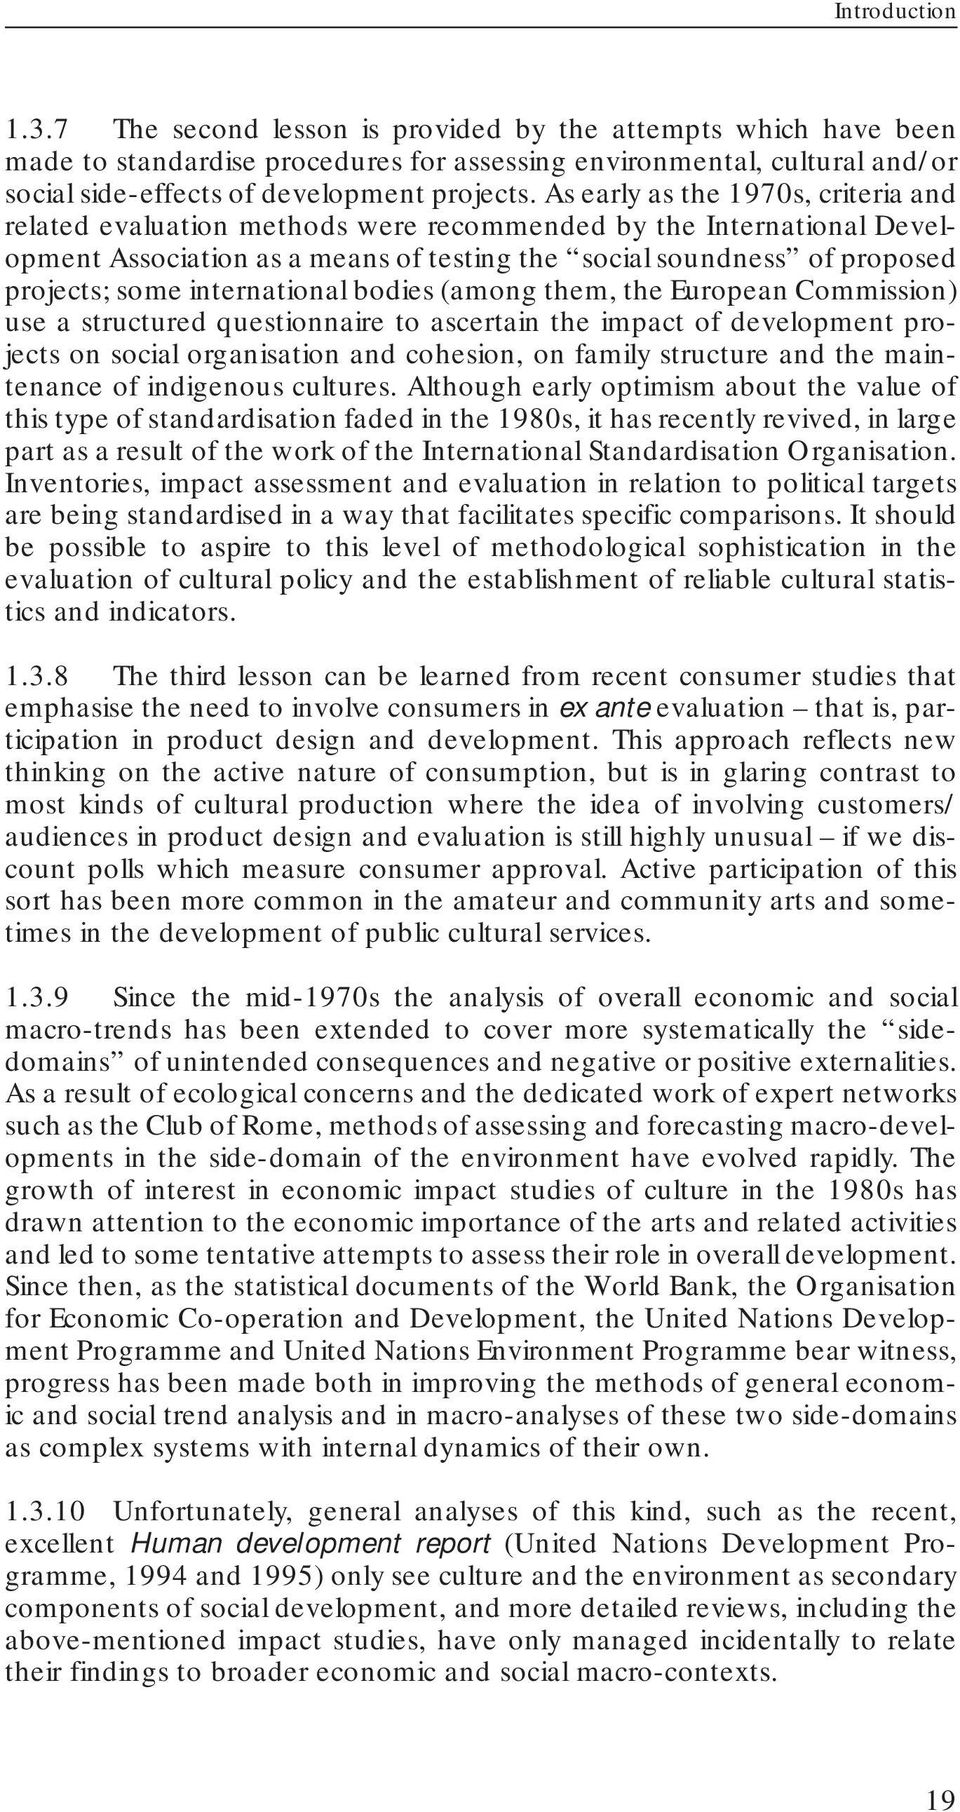 As early as the 1970s, criteria and related evaluation methods were recommended by the International Development Association as a means of testing the social soundness of proposed projects; some